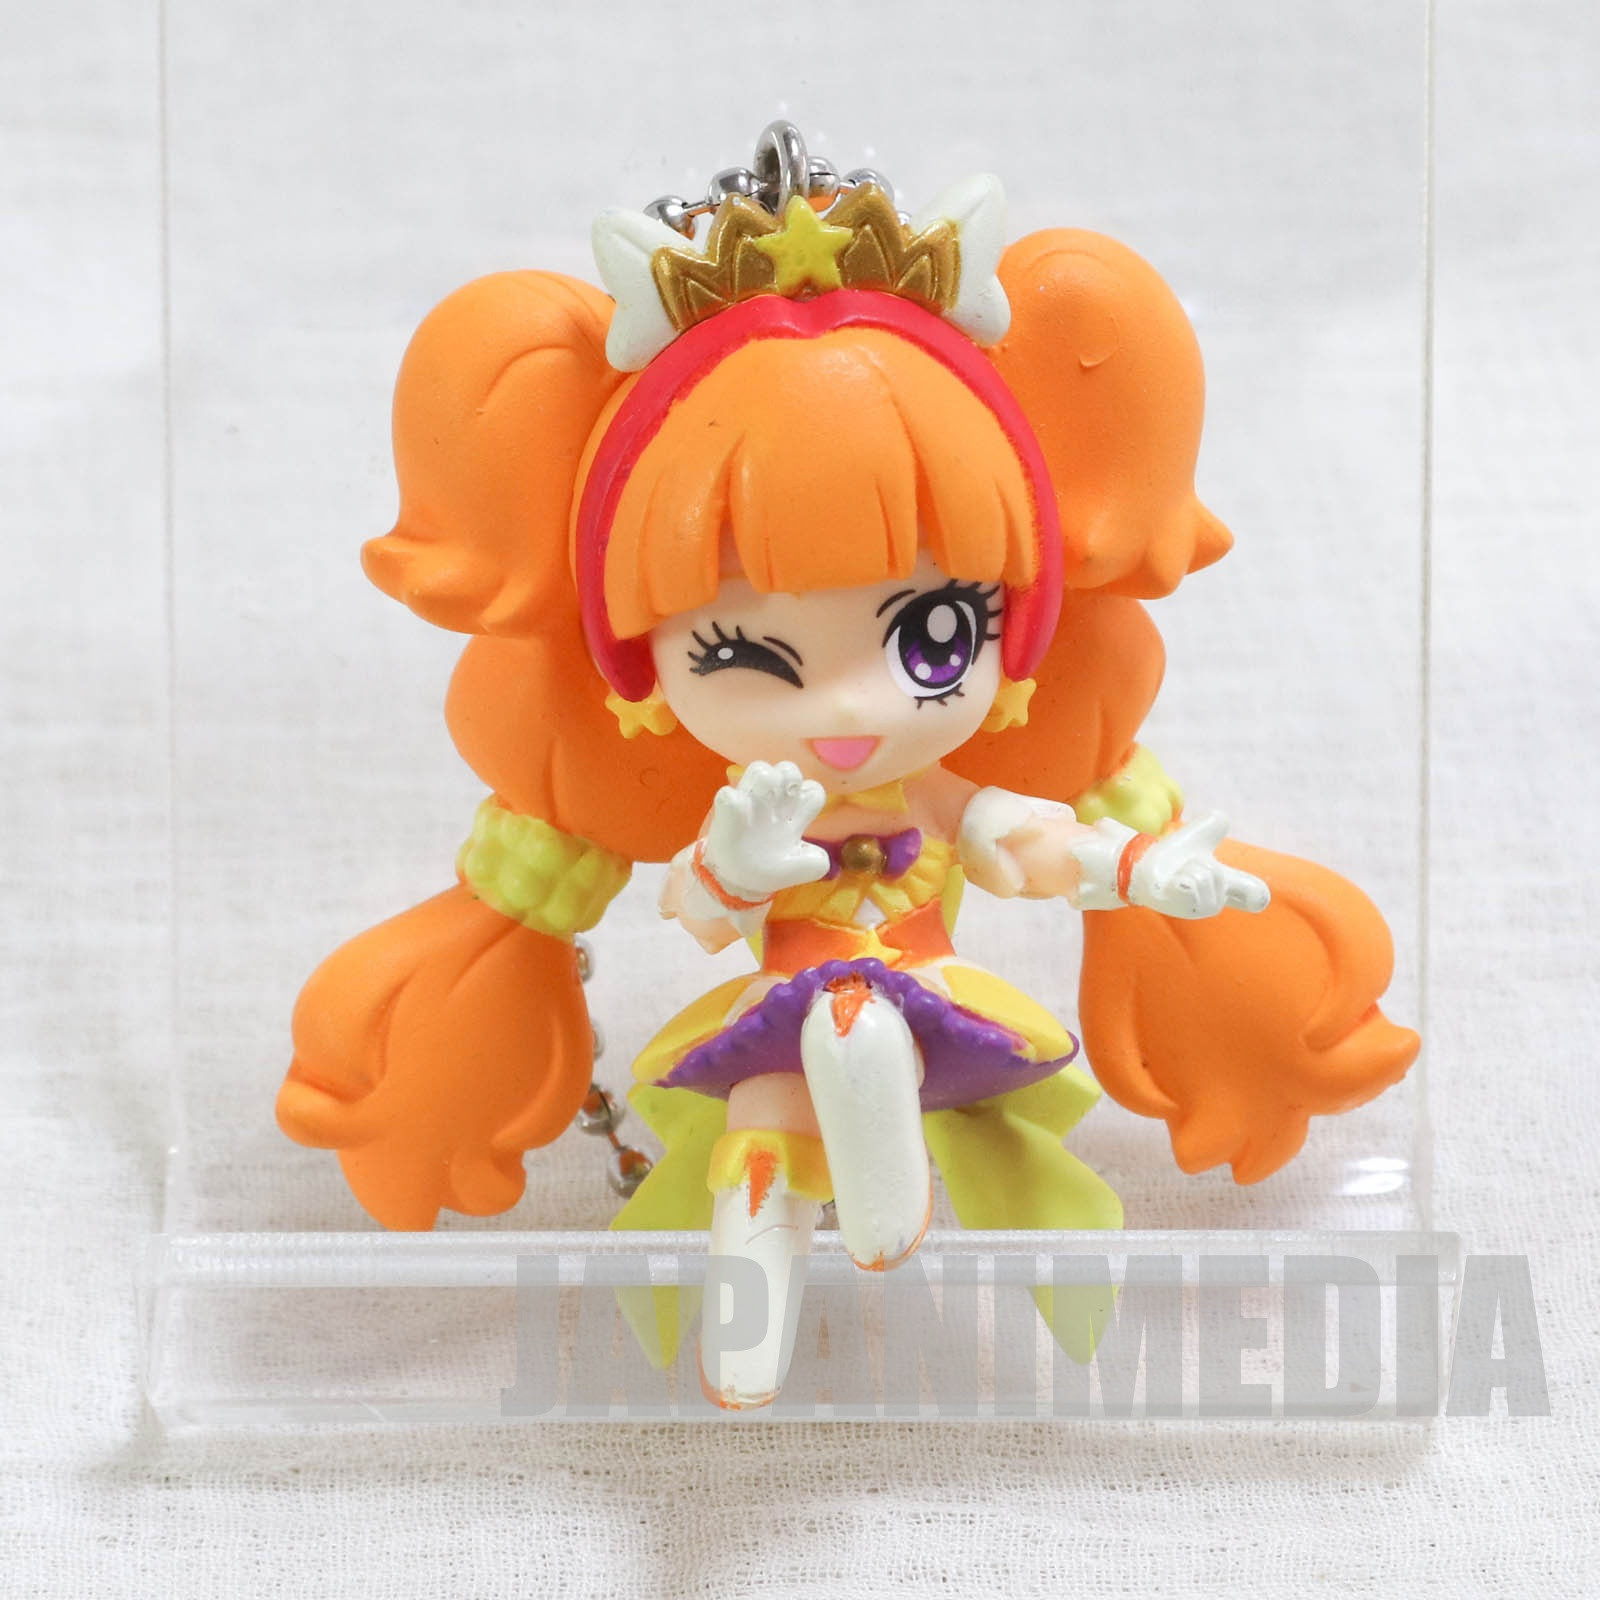 Go! Princess PreCure Cure Twinkle Mascot Figure Ball Keychain JAPAN ANIME